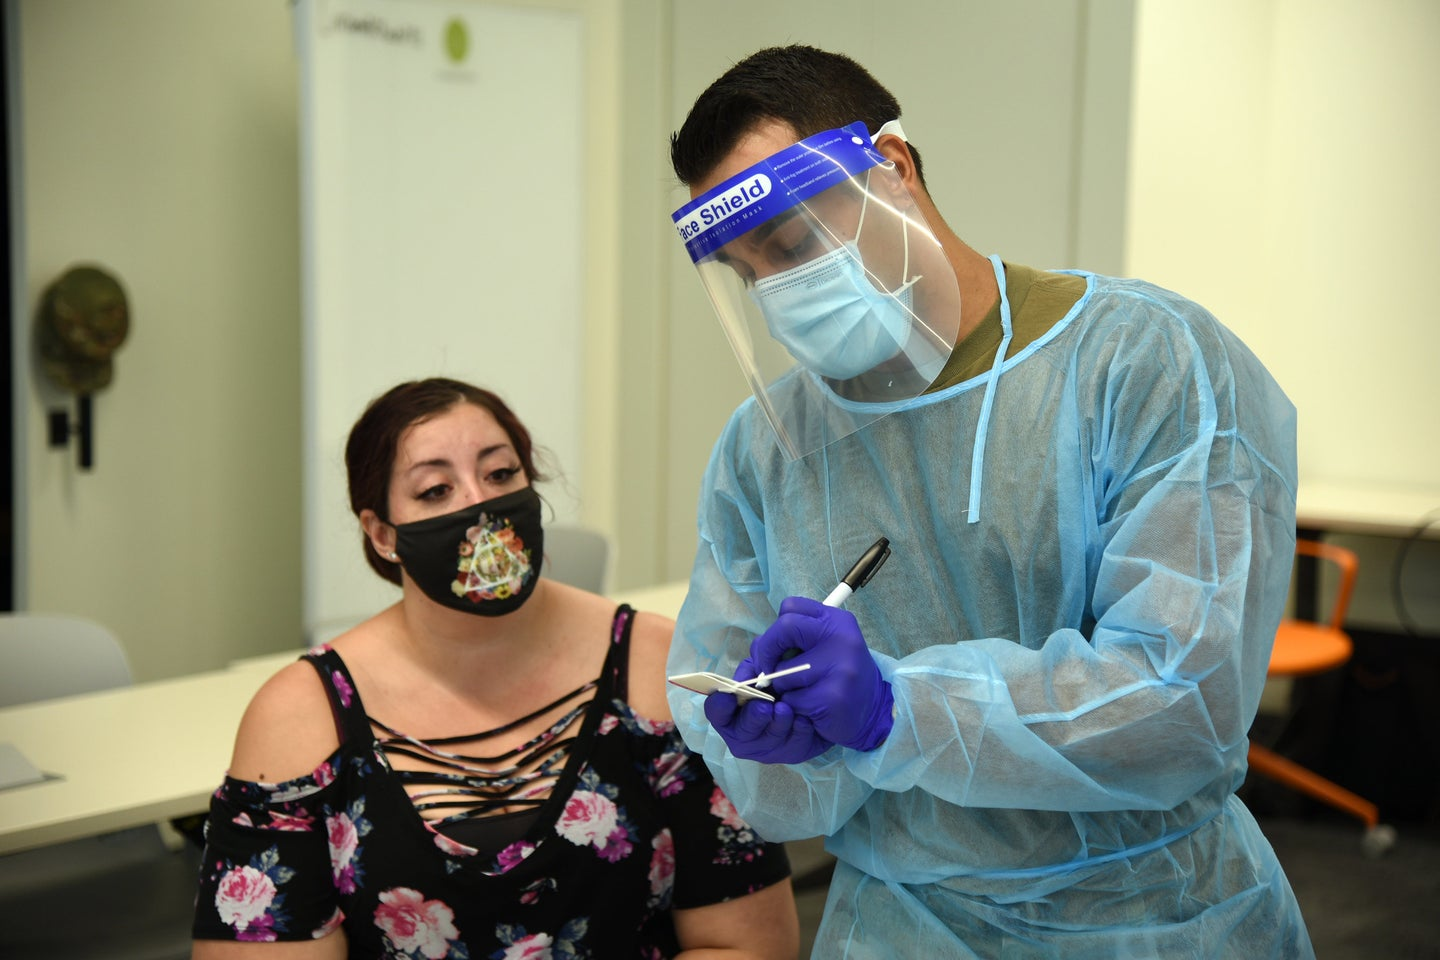 National guard members assist with point-of-care testing in Tempe, Arizona wearing face shields and plastic suits